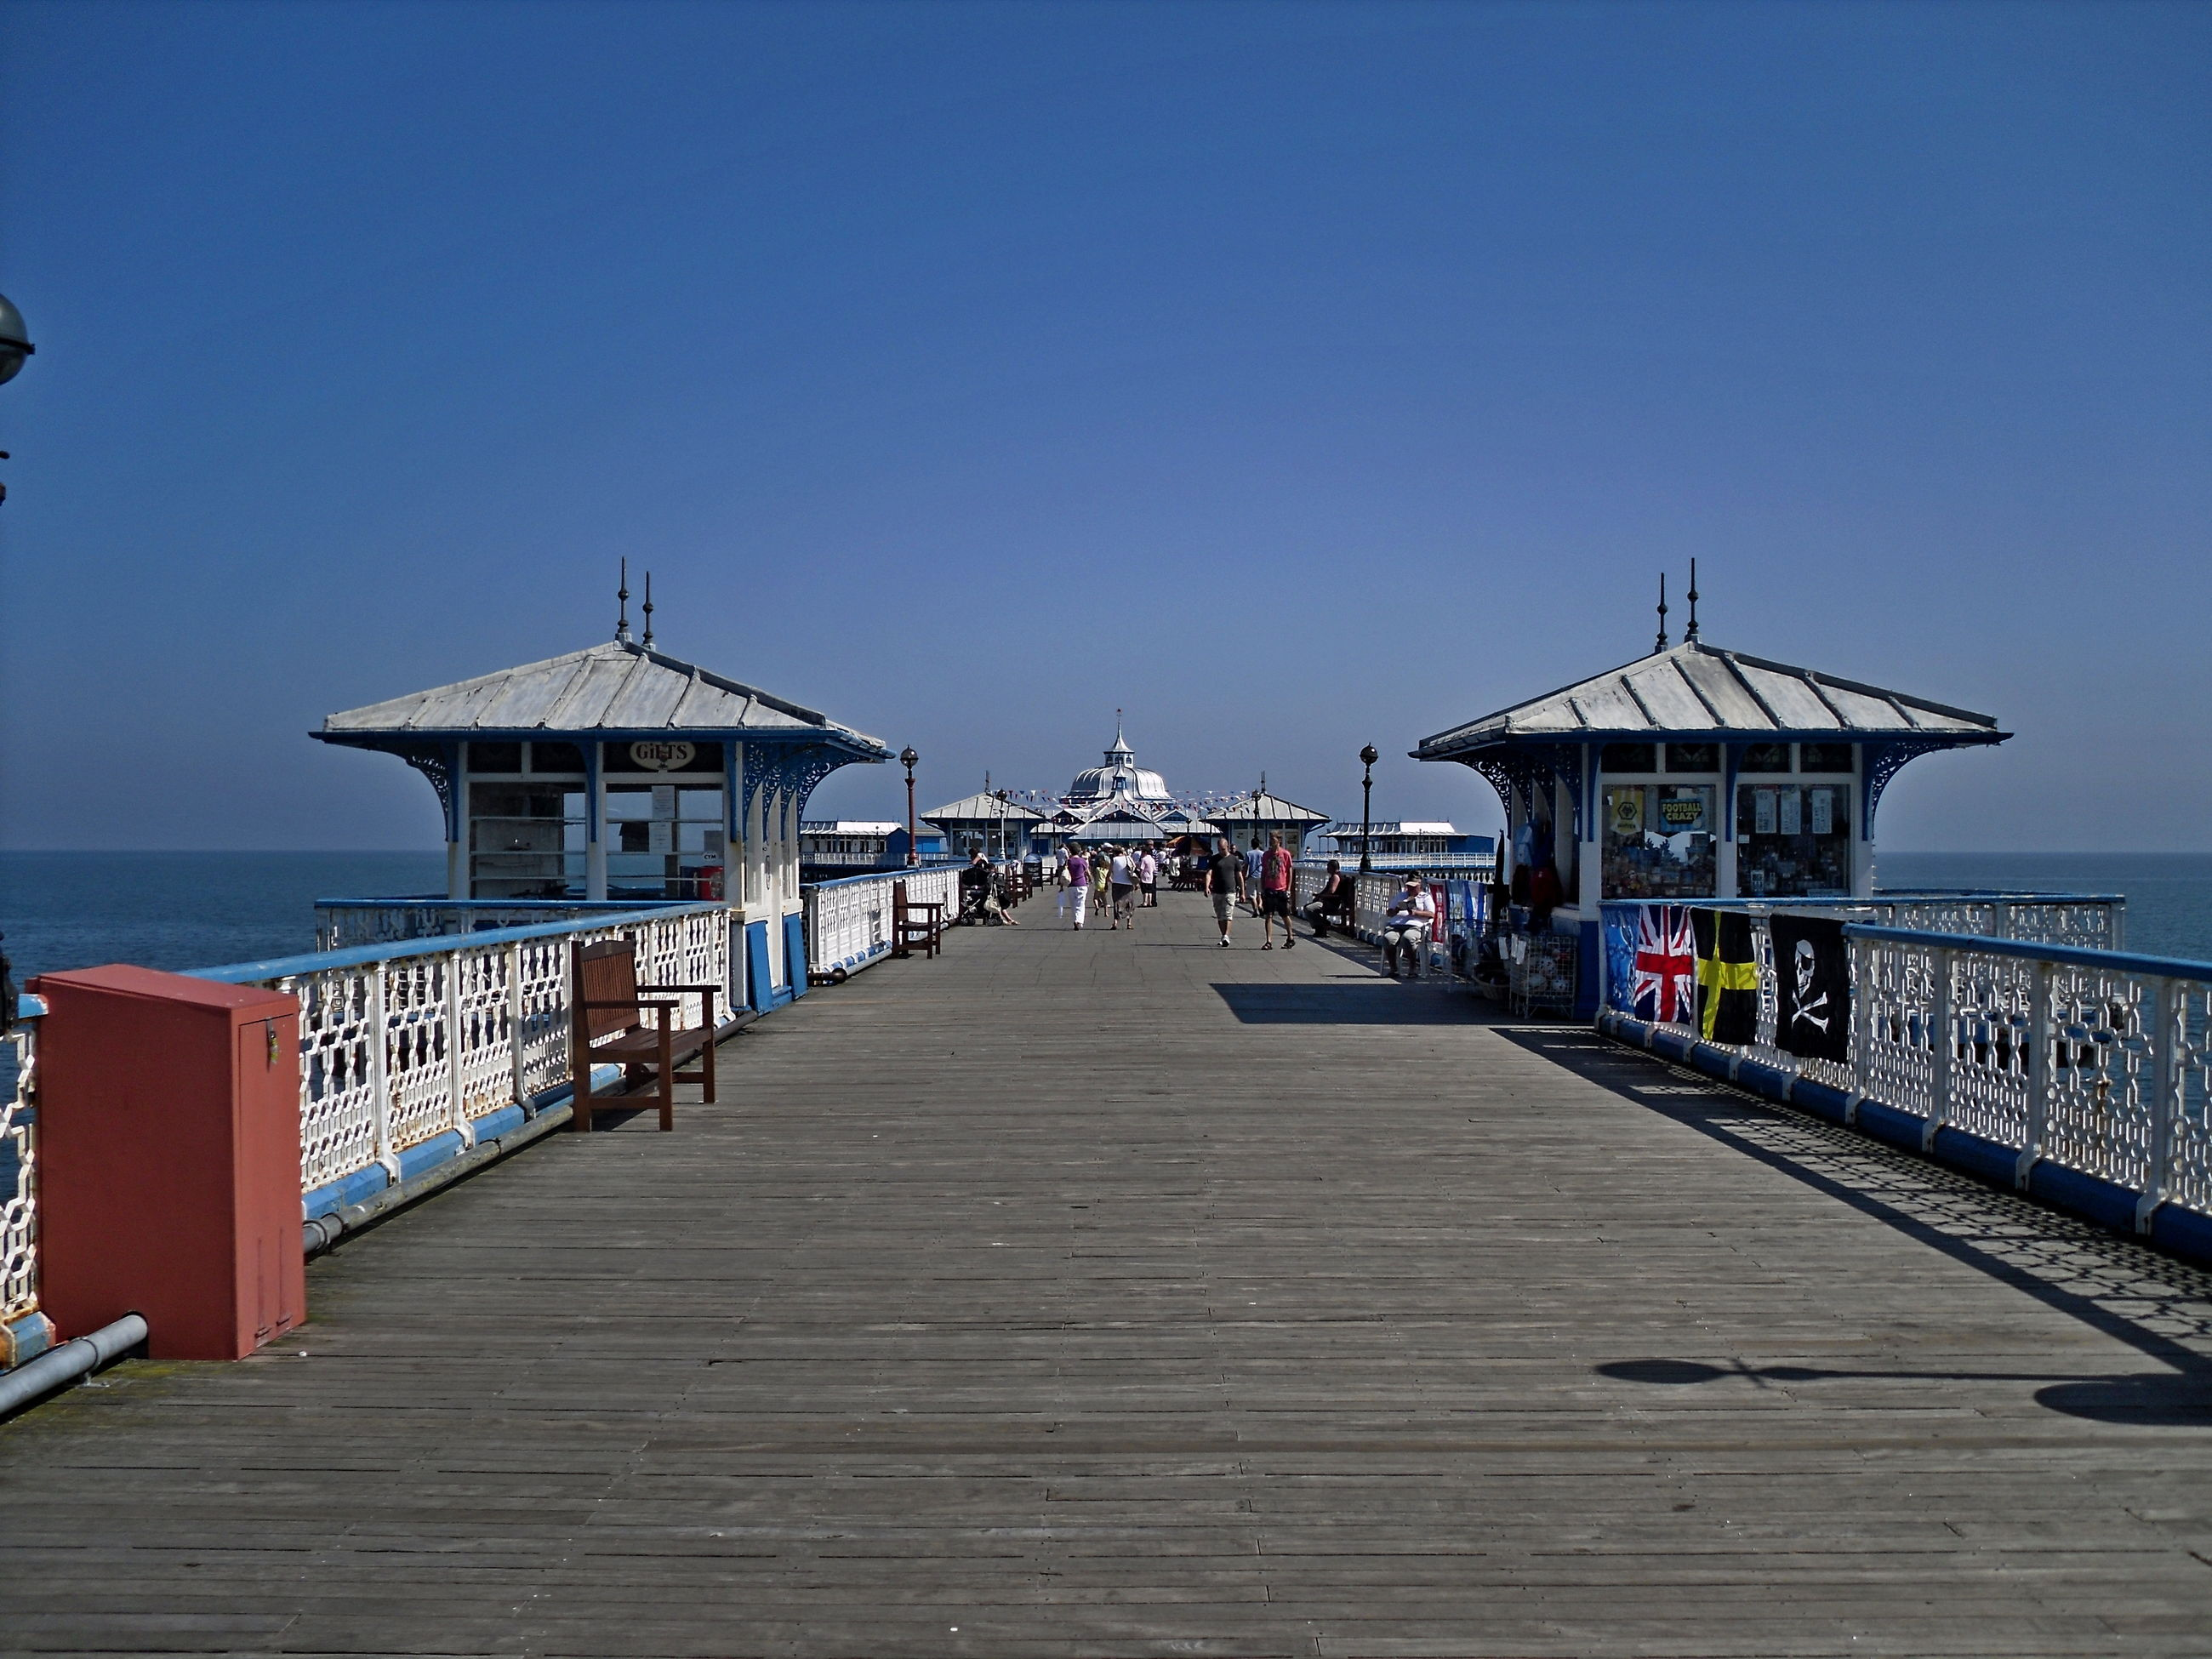 water, pier, sea, clear sky, beach, outdoors, nature, day, horizon over water, jetty, tranquil scene, blue, sky, tranquility, real people, scenics, beauty in nature, large group of people, wood paneling, people